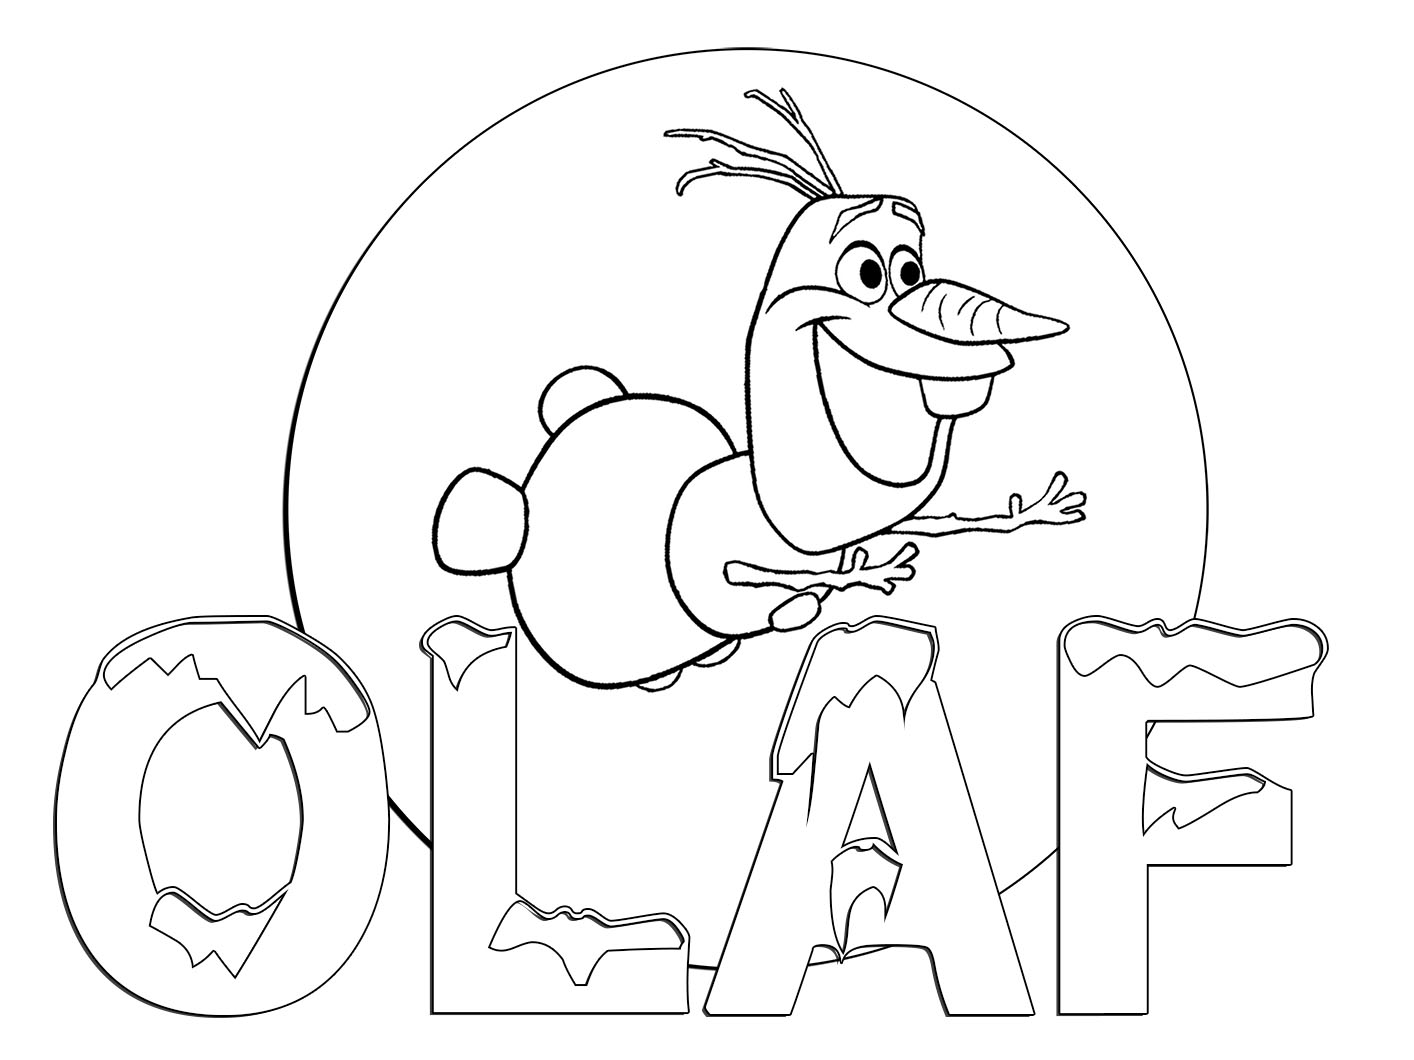 gaujard coloring pages - photo#4